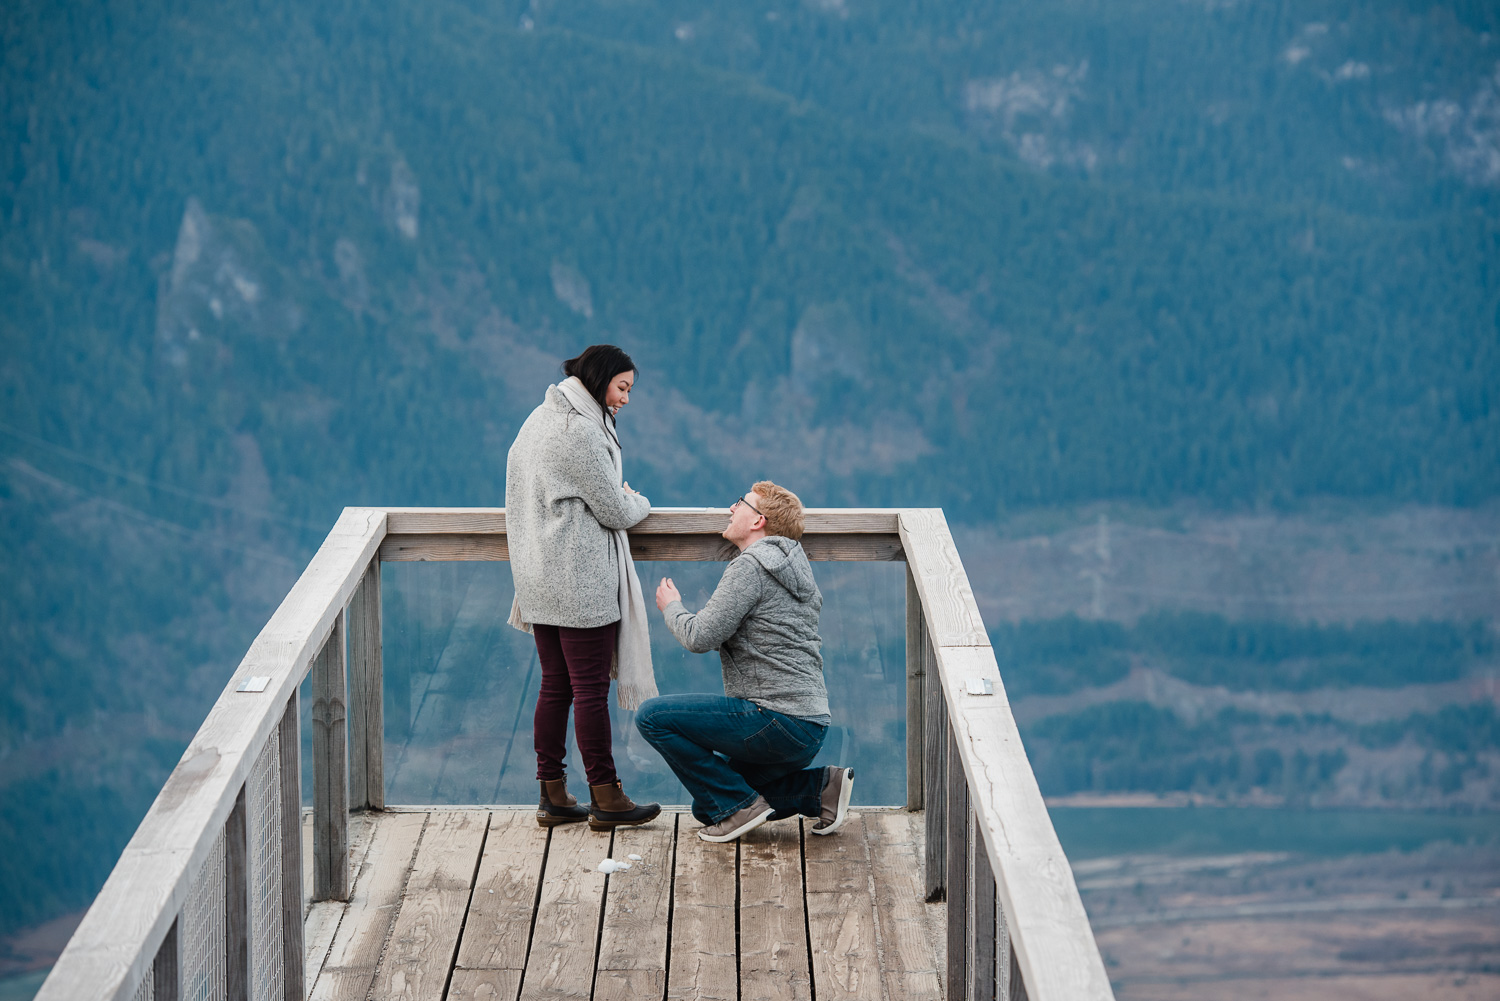 sea to sky gondola wedding-2.jpg